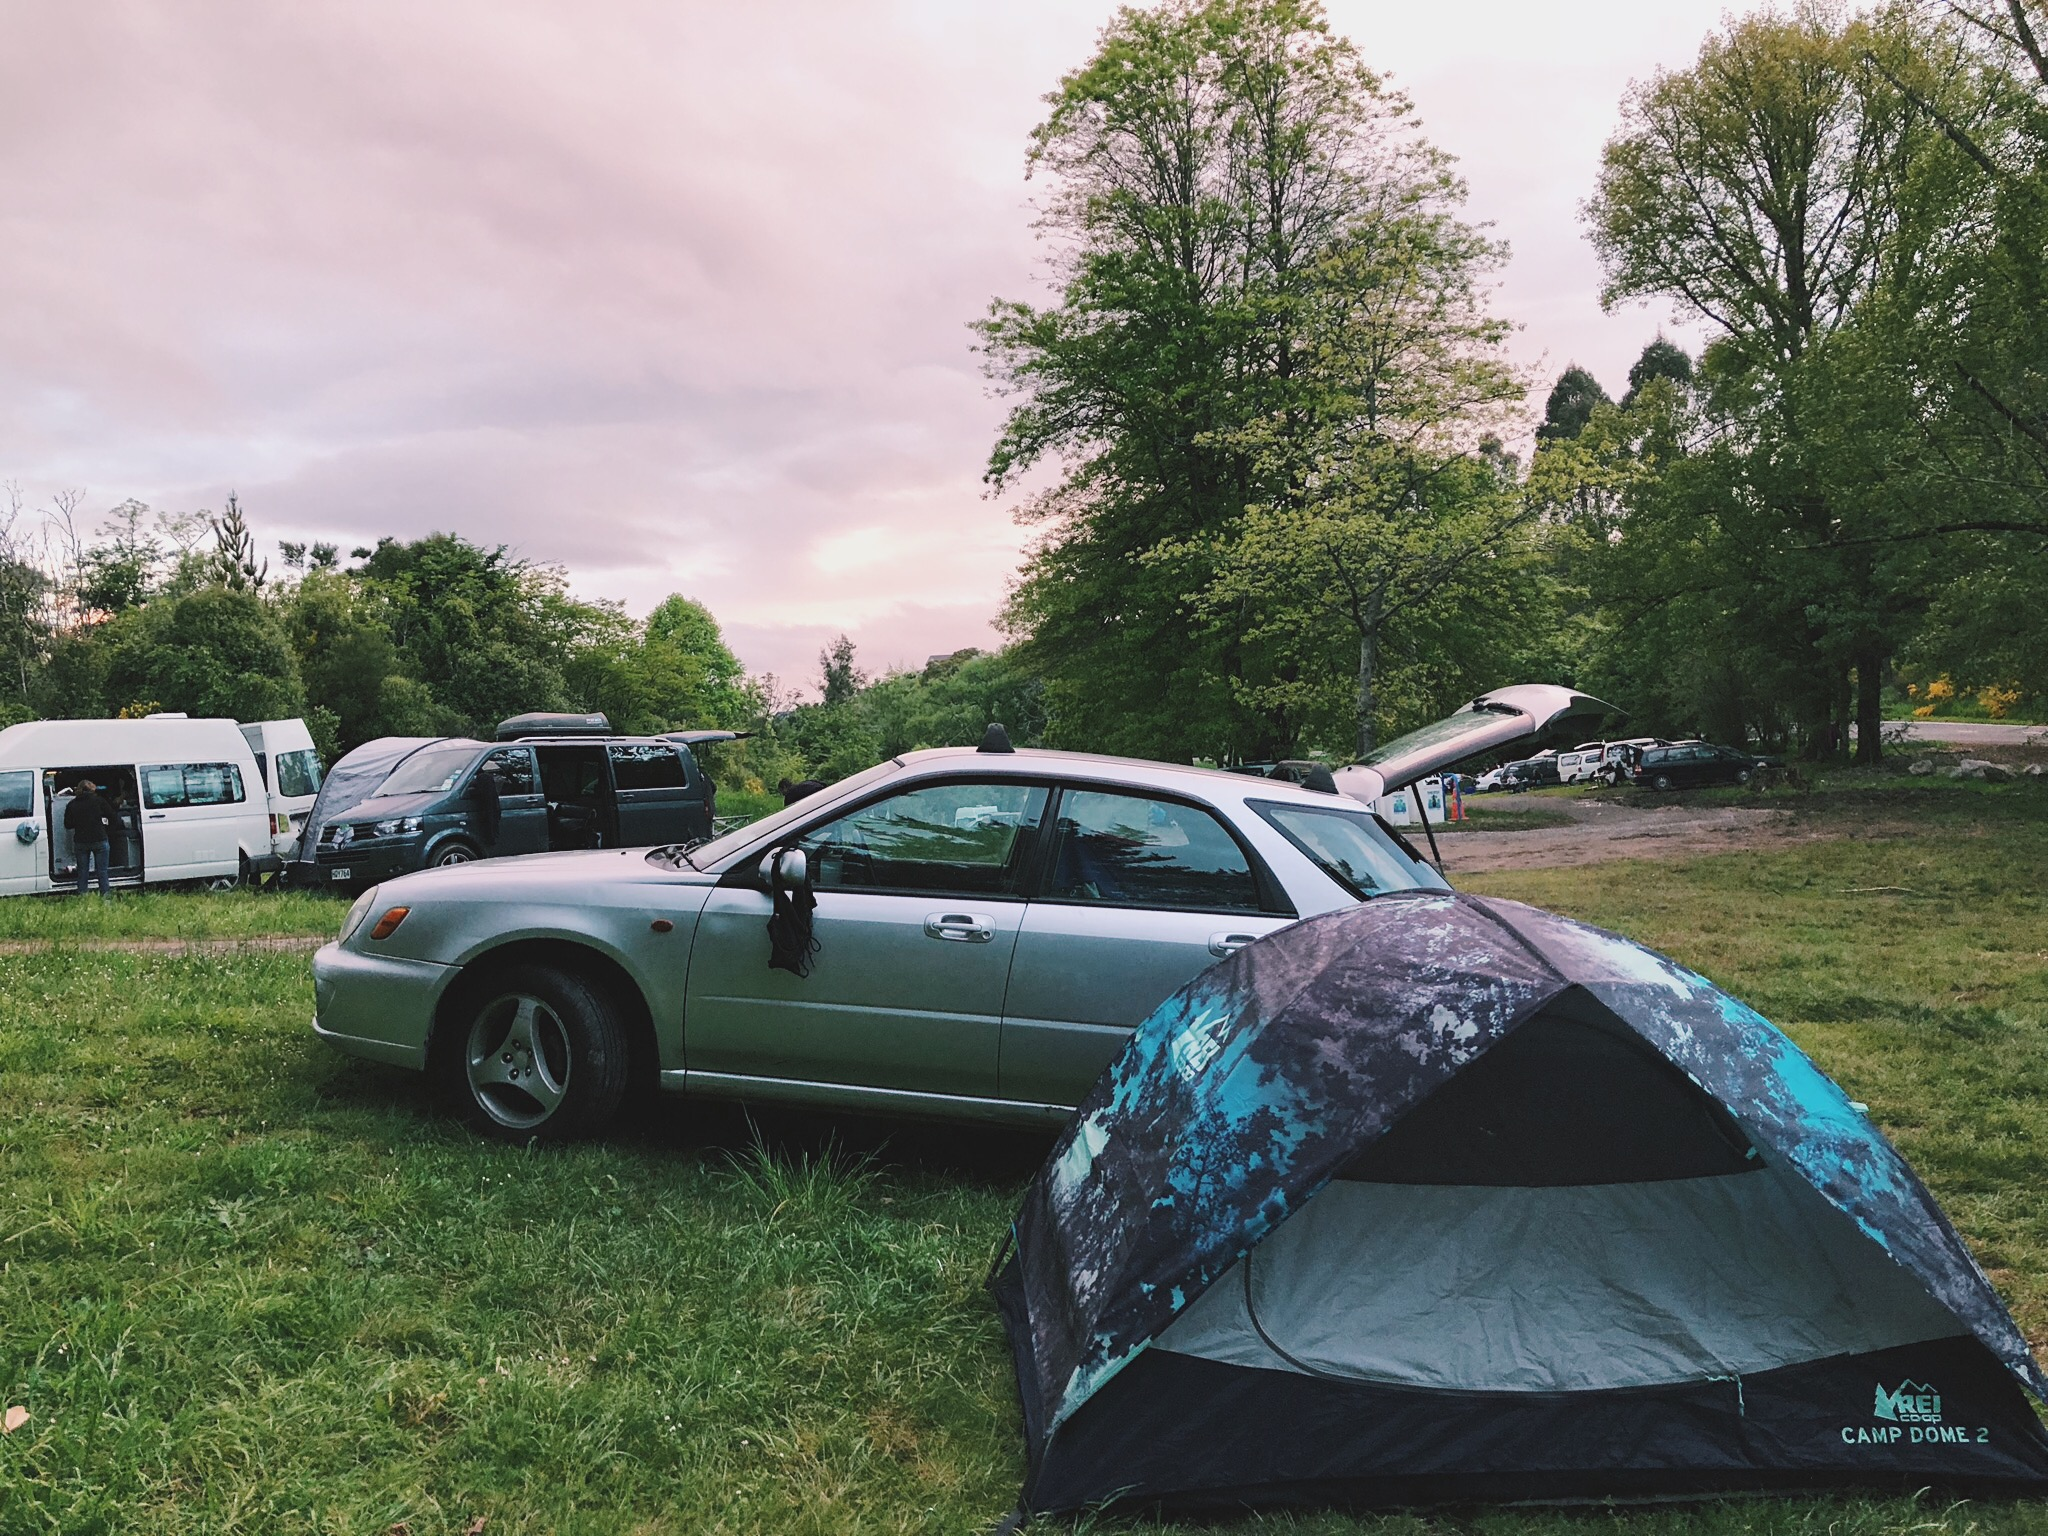 """Beezy and the tent at """"Camp 15-Degree-Tilt."""" Pro tip: wing mirrors are a great place to dry swimsuits."""